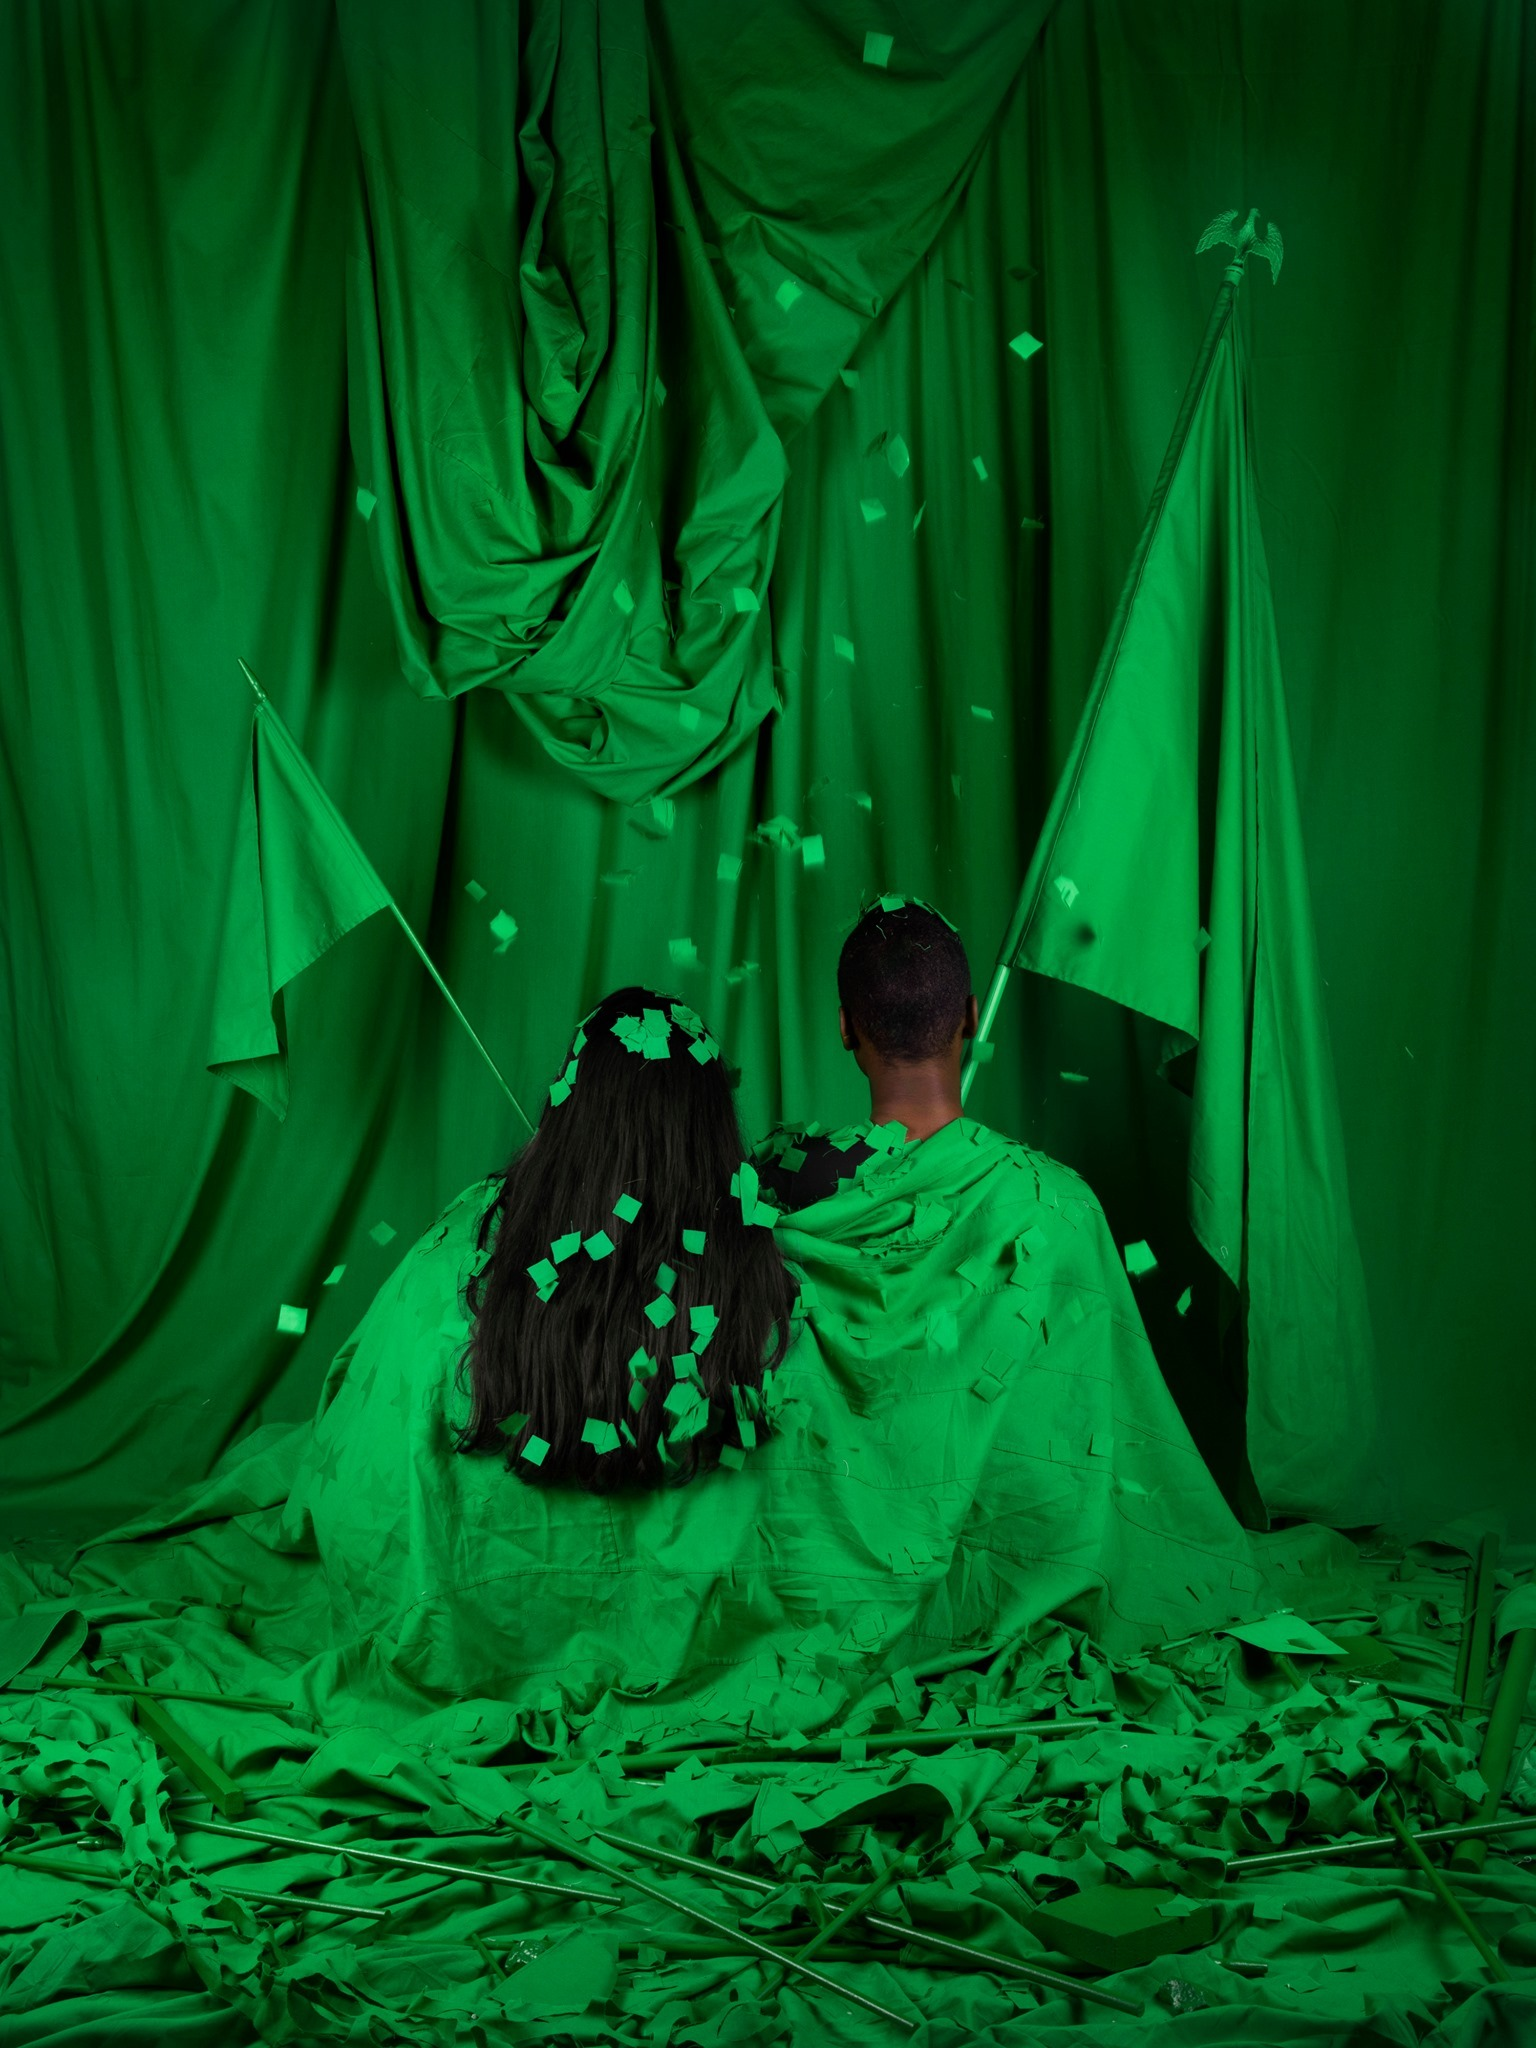 Stephanie Syjuco, <i>Chromakey Aftermath (Standard Bearers)</i>, 2019, Archival pigment print, 40 × 30 in.